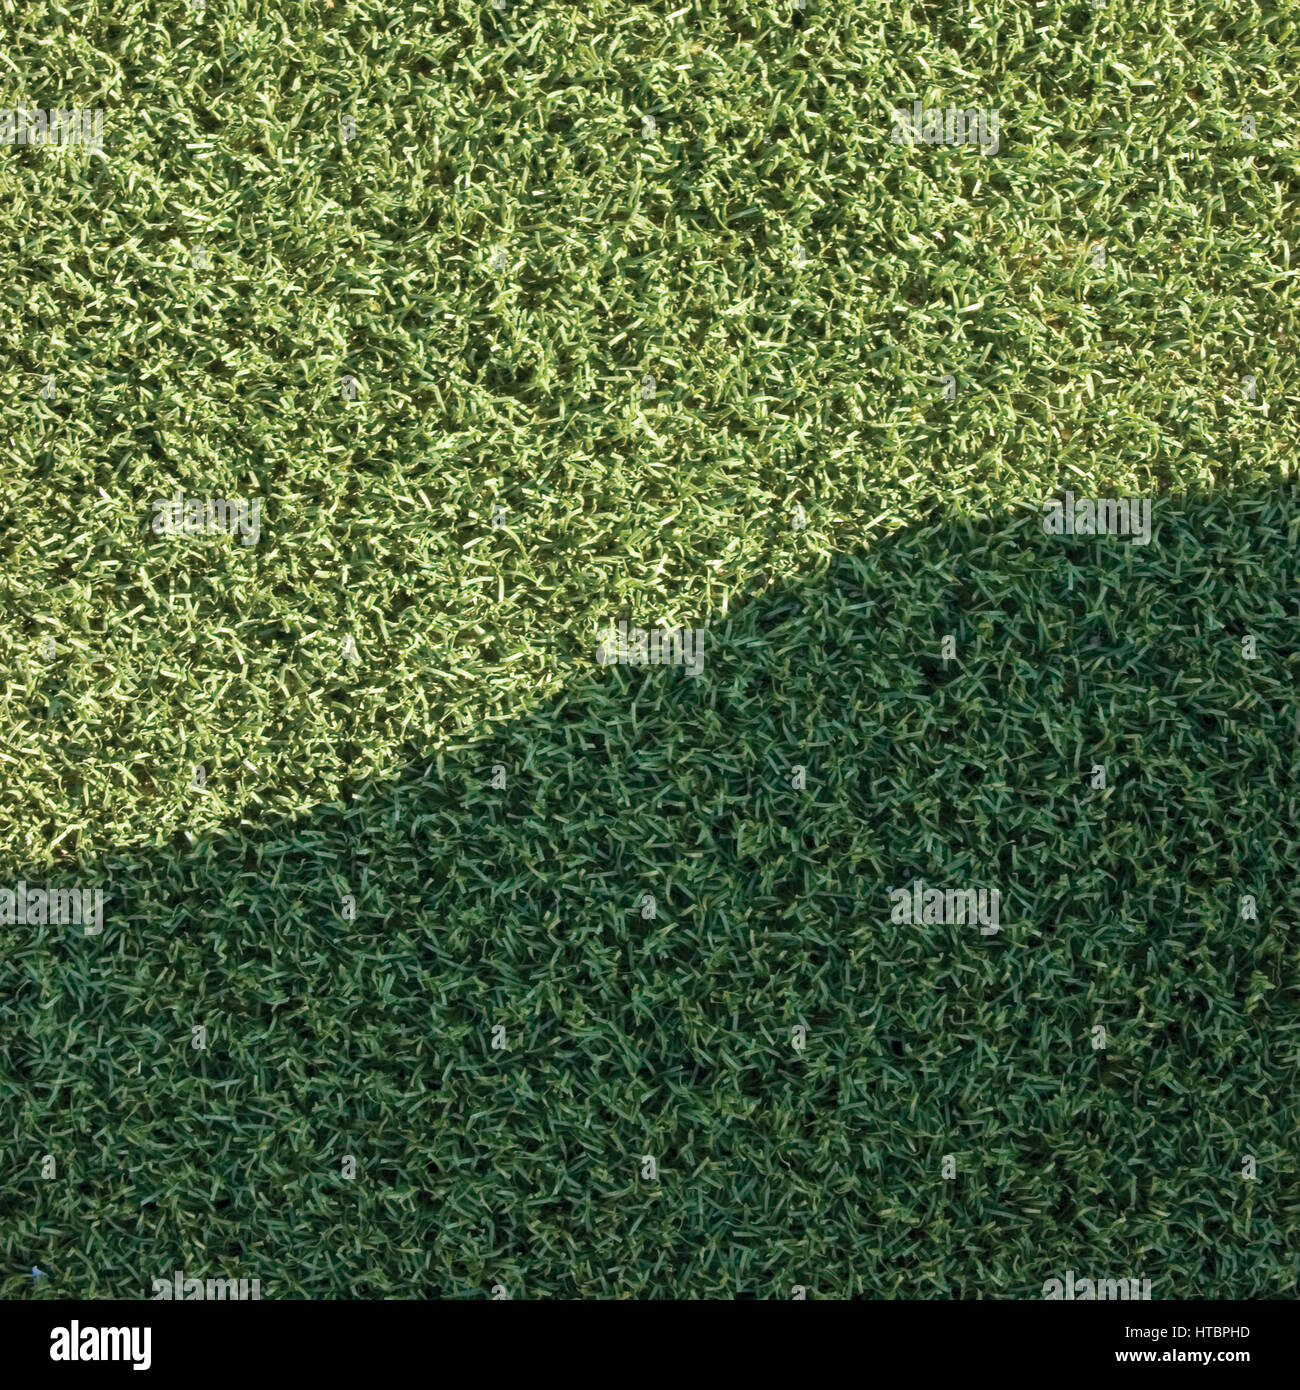 artificial turf texture. Artificial Grass Fake Turf Synthetic Lawn Field Macro Closeup With Gentle Shaded Shadow Area, Green Sports Texture Background A Shade